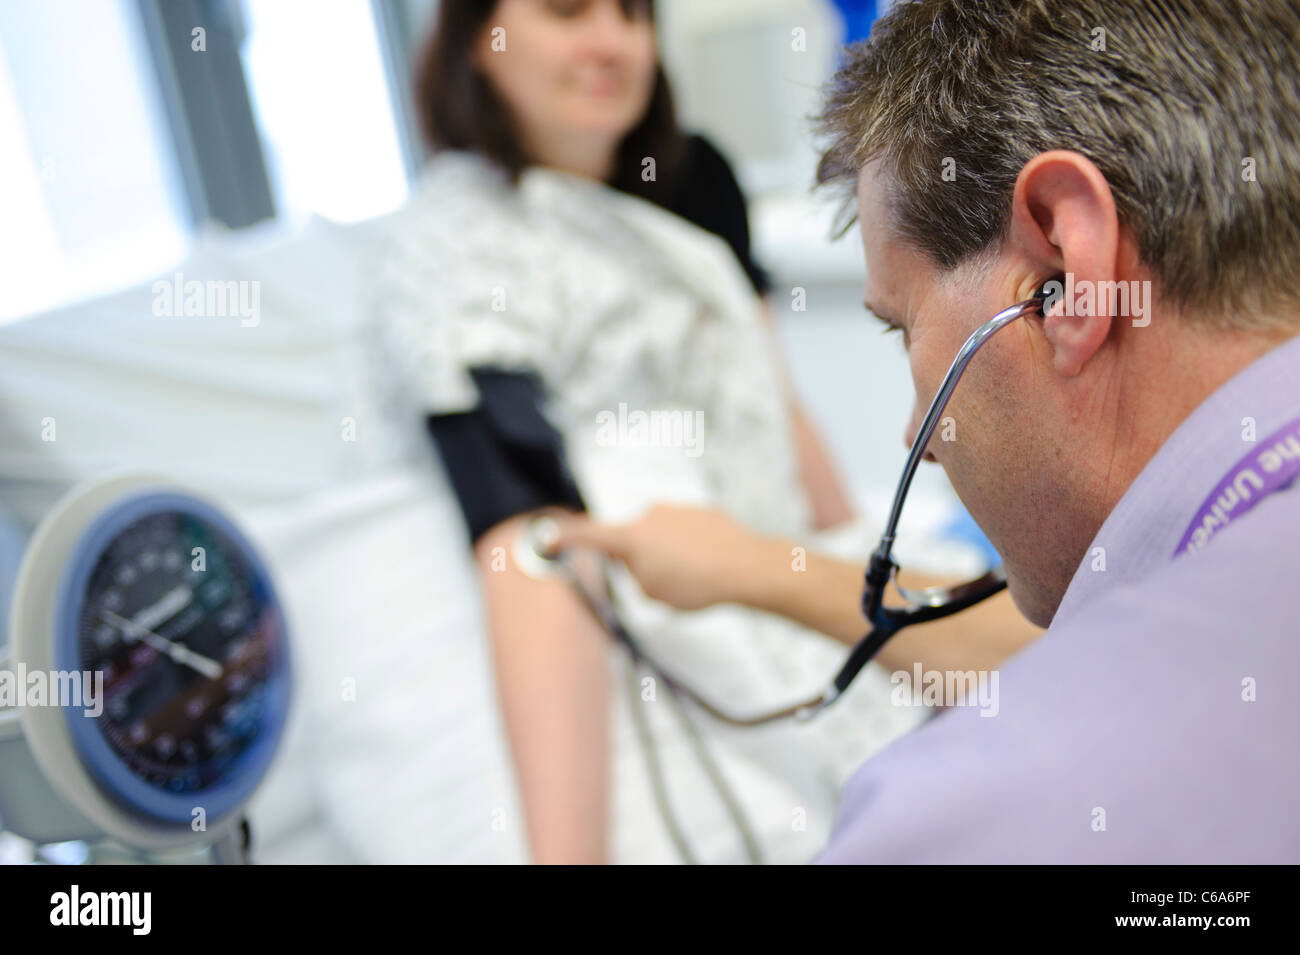 doctor checking blood pressure of patient and using stethoscope hospital bed patient and doctor not identifiable Stock Photo